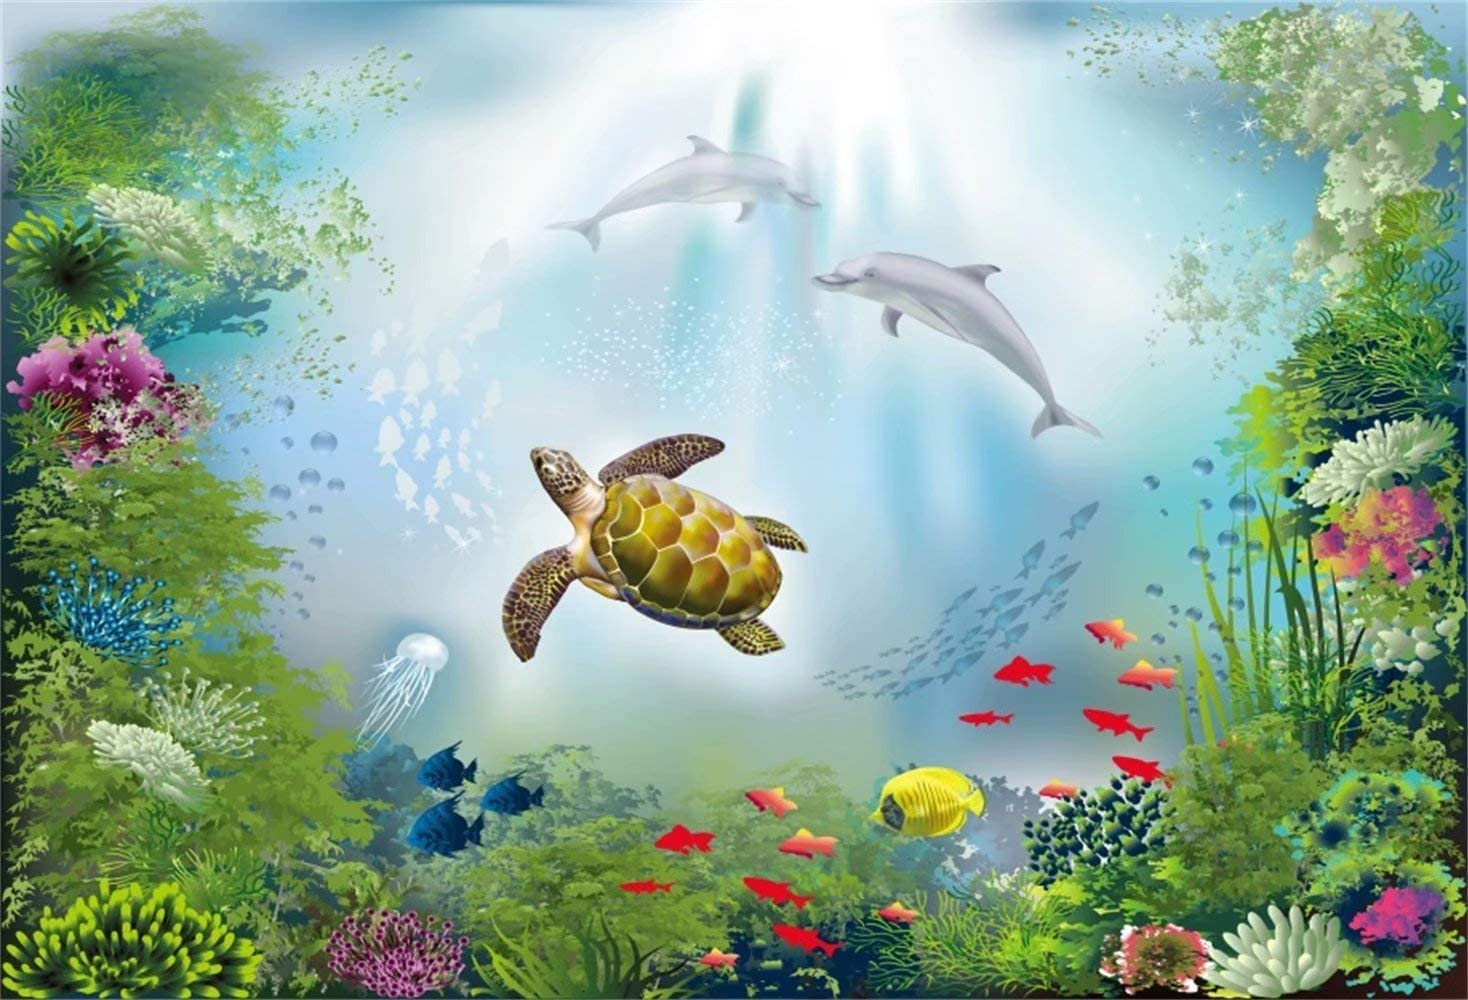 10x6.5ft Wonderful Underwater Sea View Backdrop Polyester Sea Turtle Couple Dolphins Colorful Tropical Fish Coral Reef Jellyfish Bright Sunlight Undersea World Background Children Birthday Decor